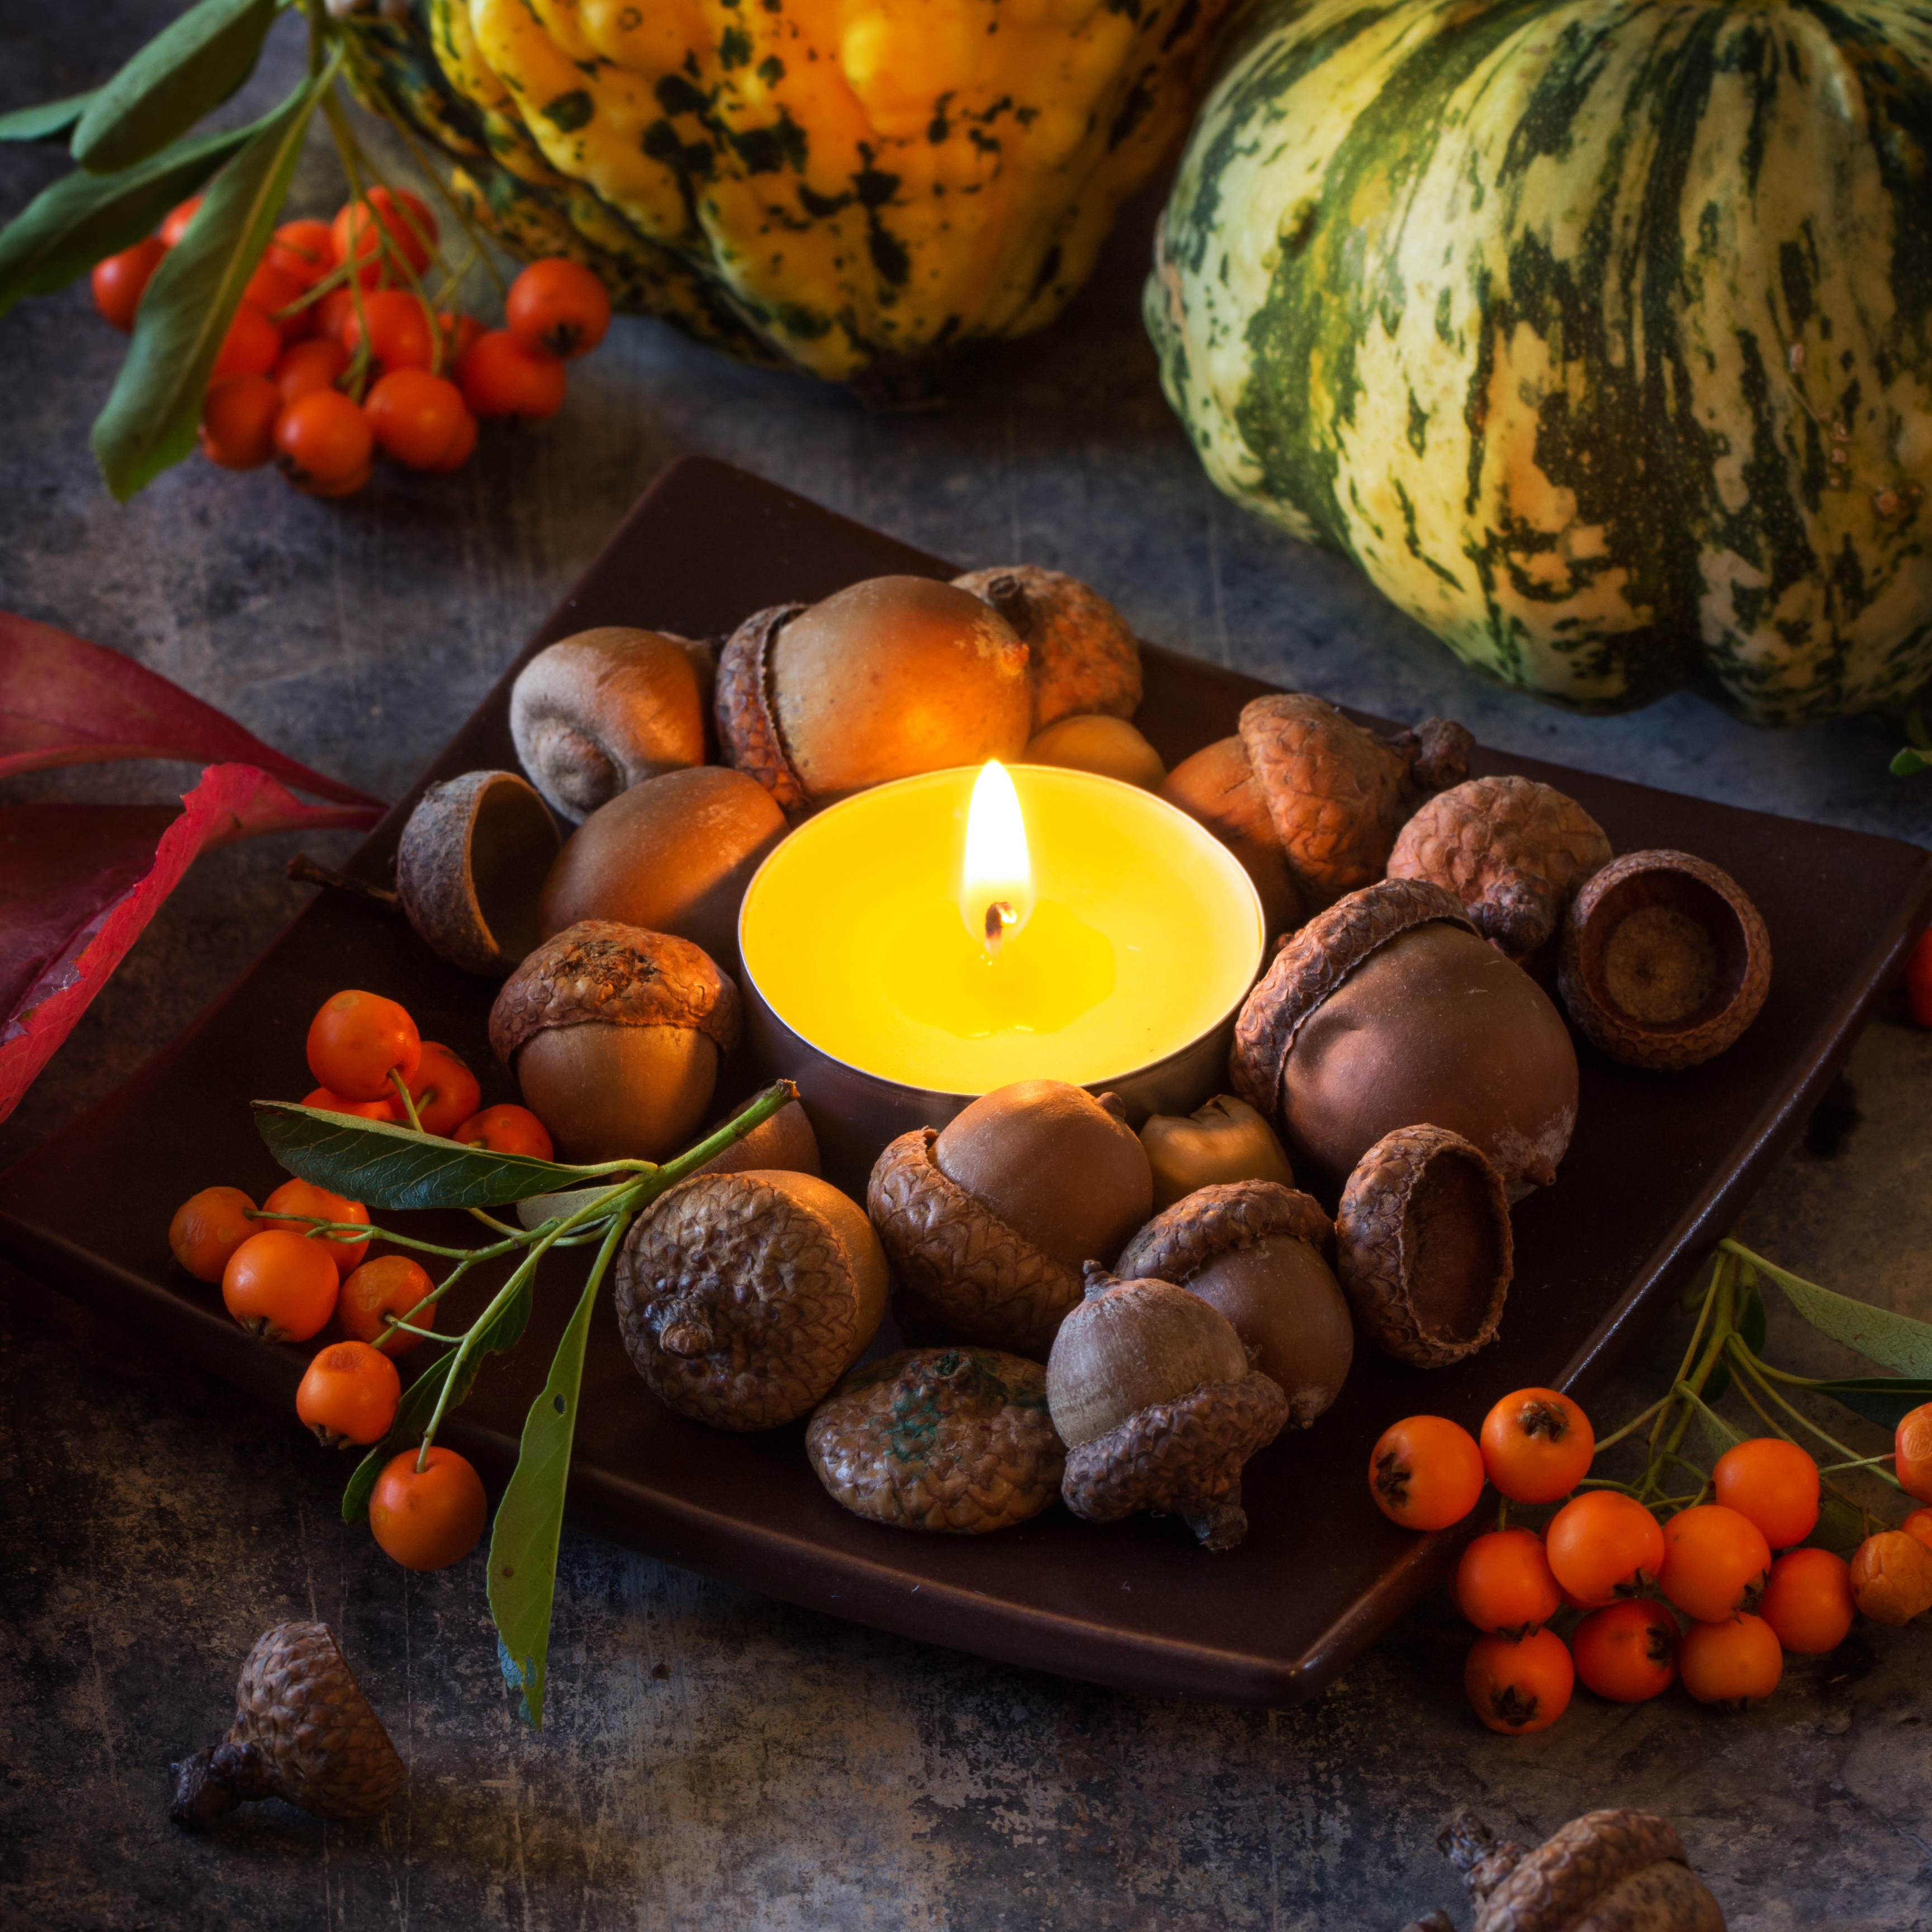 Pumpkins, nuts, berries and mushrooms chanterelle with burning candle. Square image.